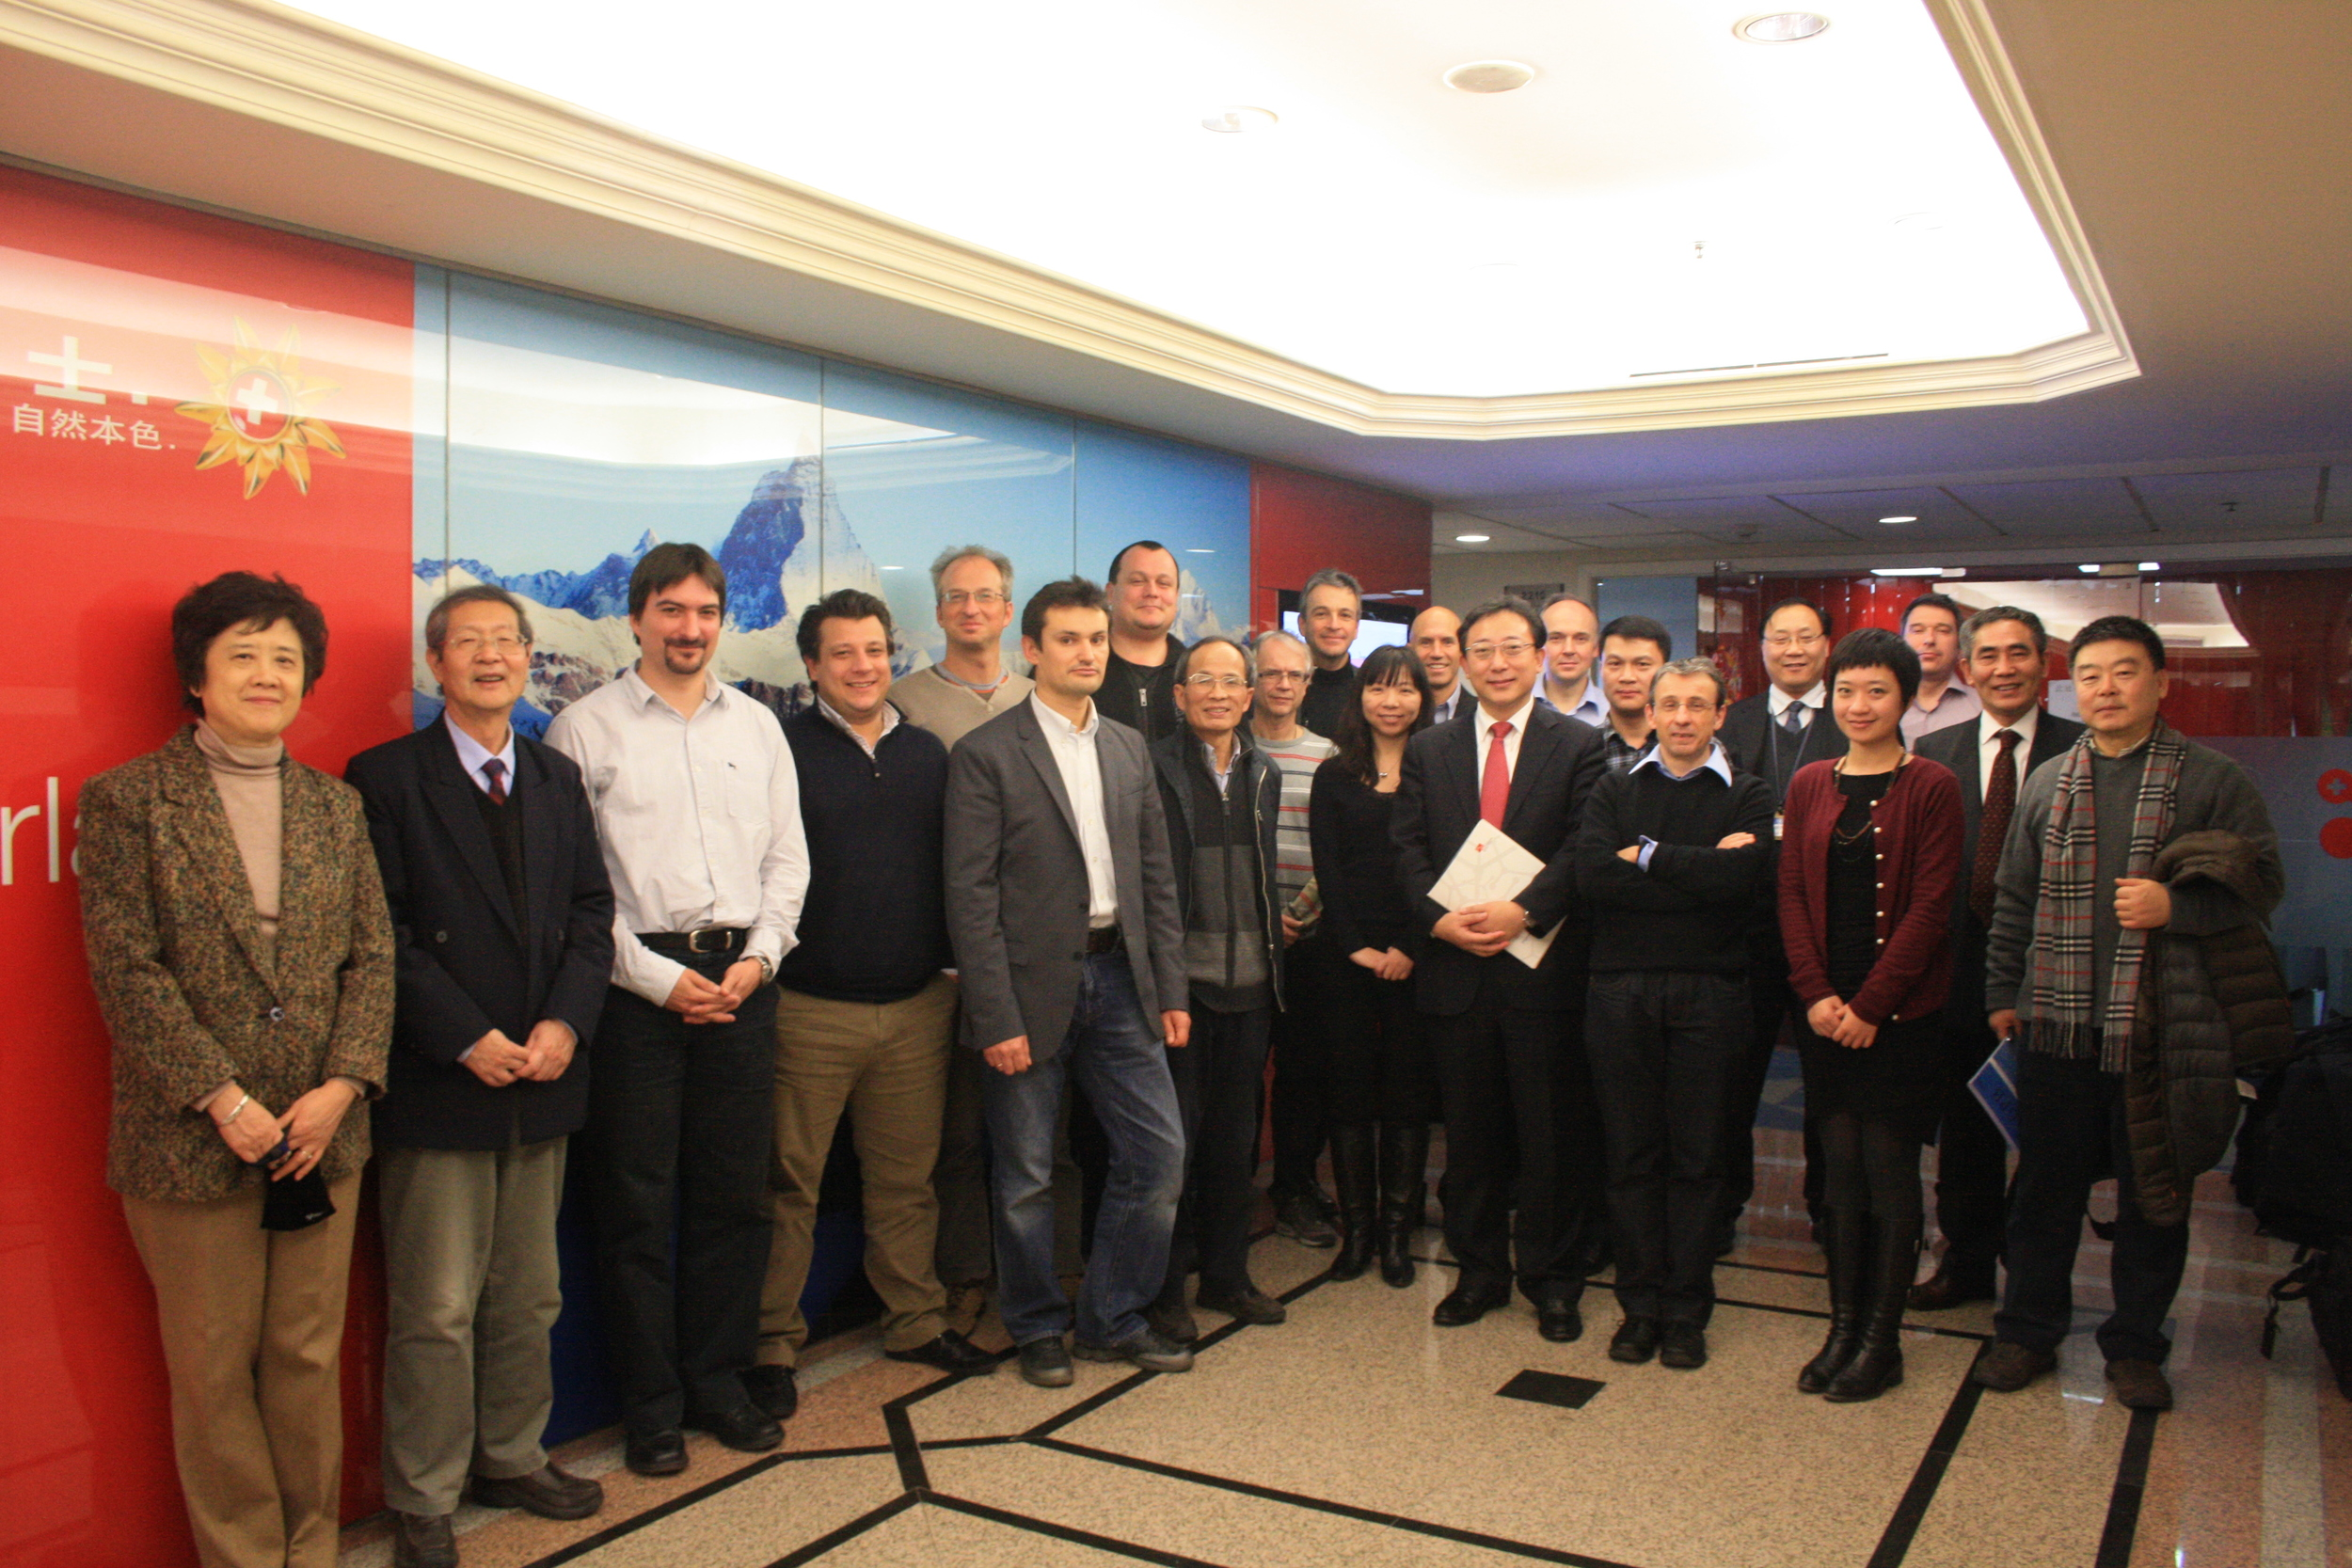 The SIB Delegation is meeting Chinese peers at swissnex China in Shanghai